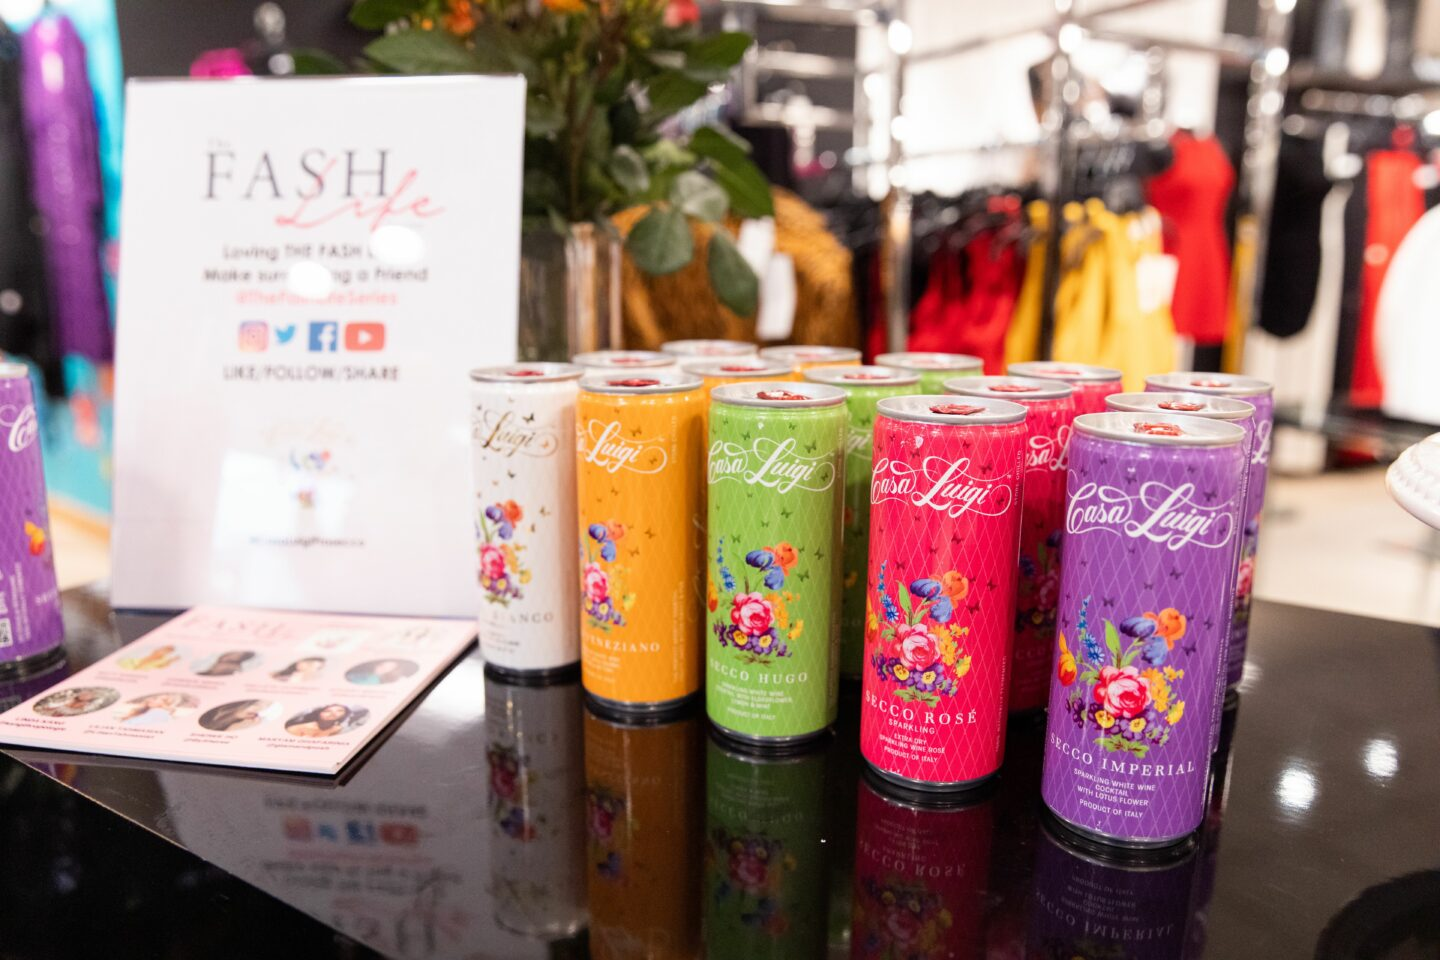 Casa Luigi Prosecco served at The Fash Life Series x Bloomingdale's Beverly Center Sneak Peek Party